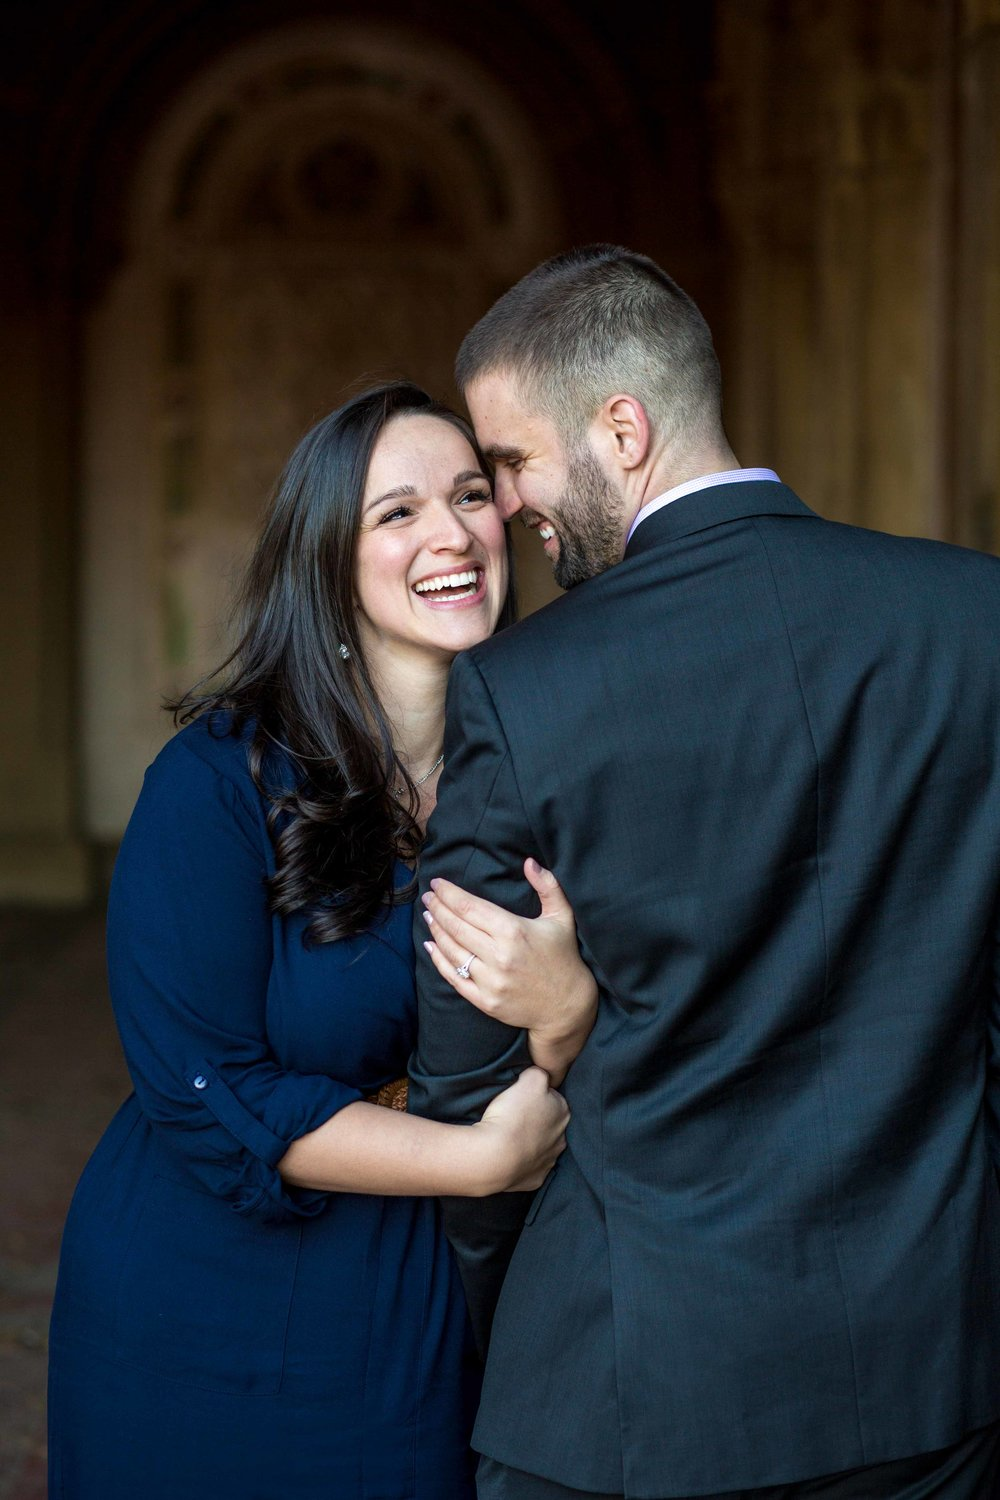 NYC Central Park Engagement Session Shoot Wedding Photographer-3.jpg